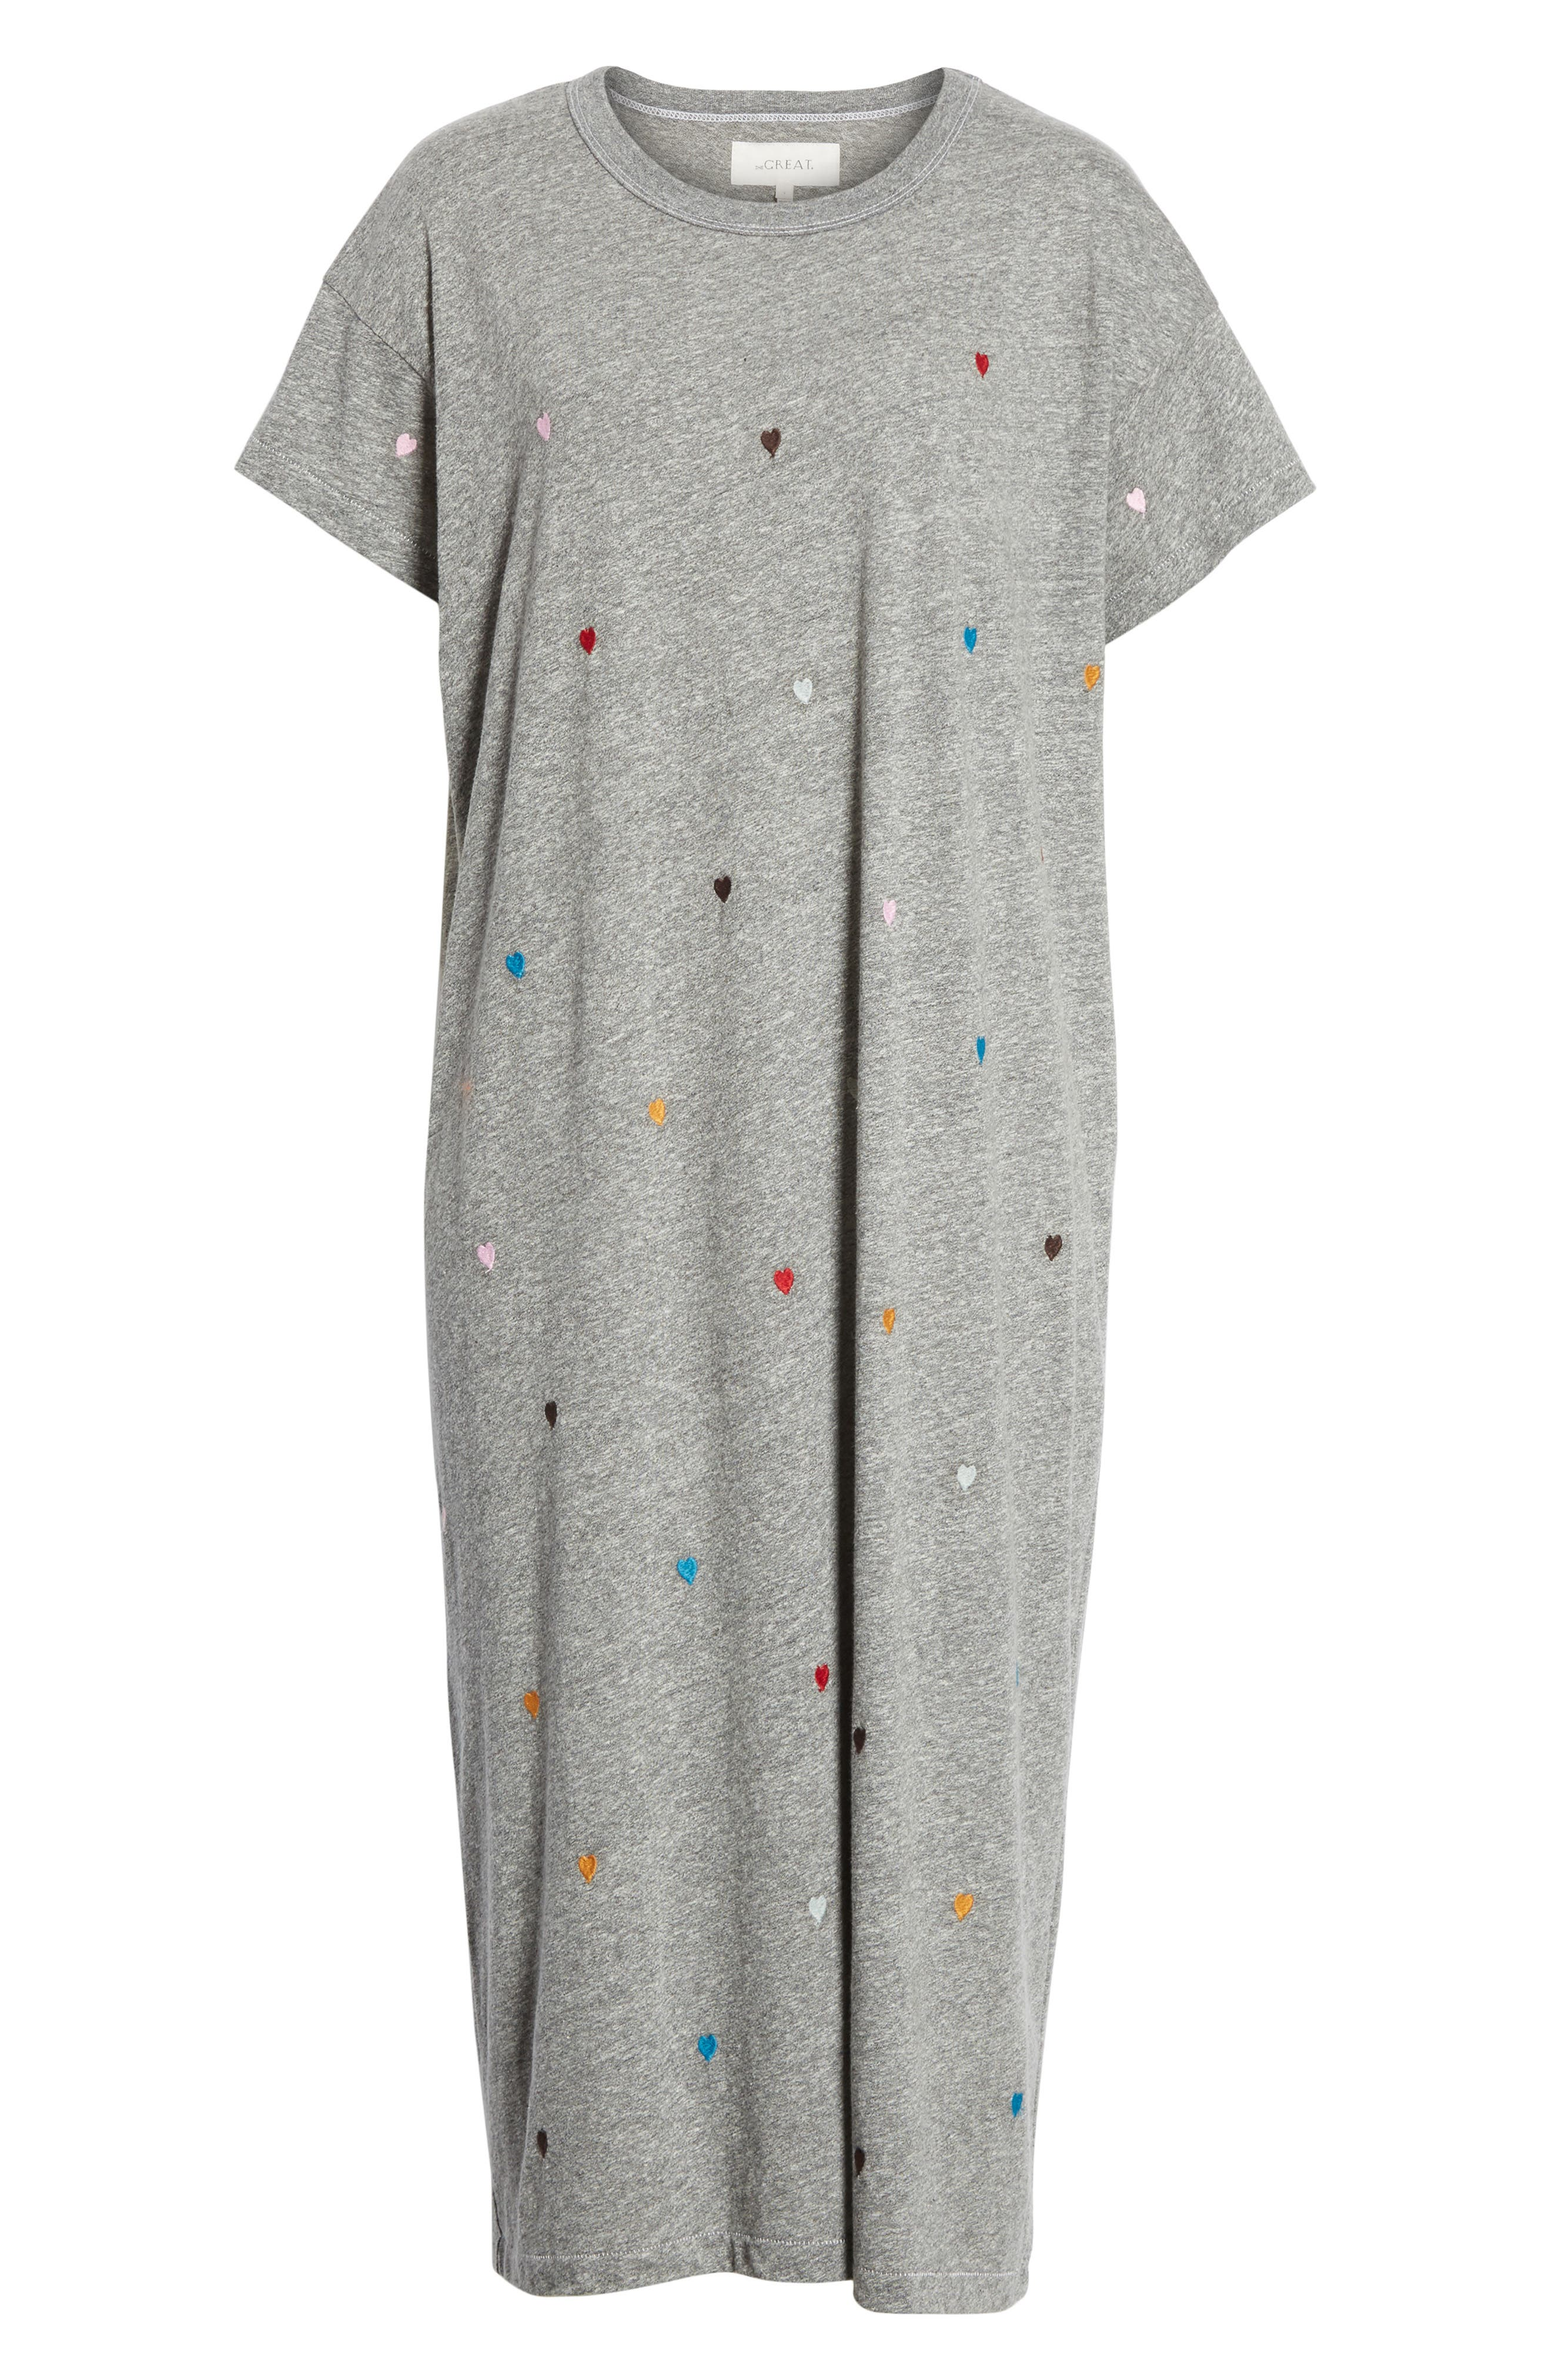 The Boxy Embroidered T-Shirt Dress,                             Alternate thumbnail 6, color,                             Grey/ Heart Embroidery